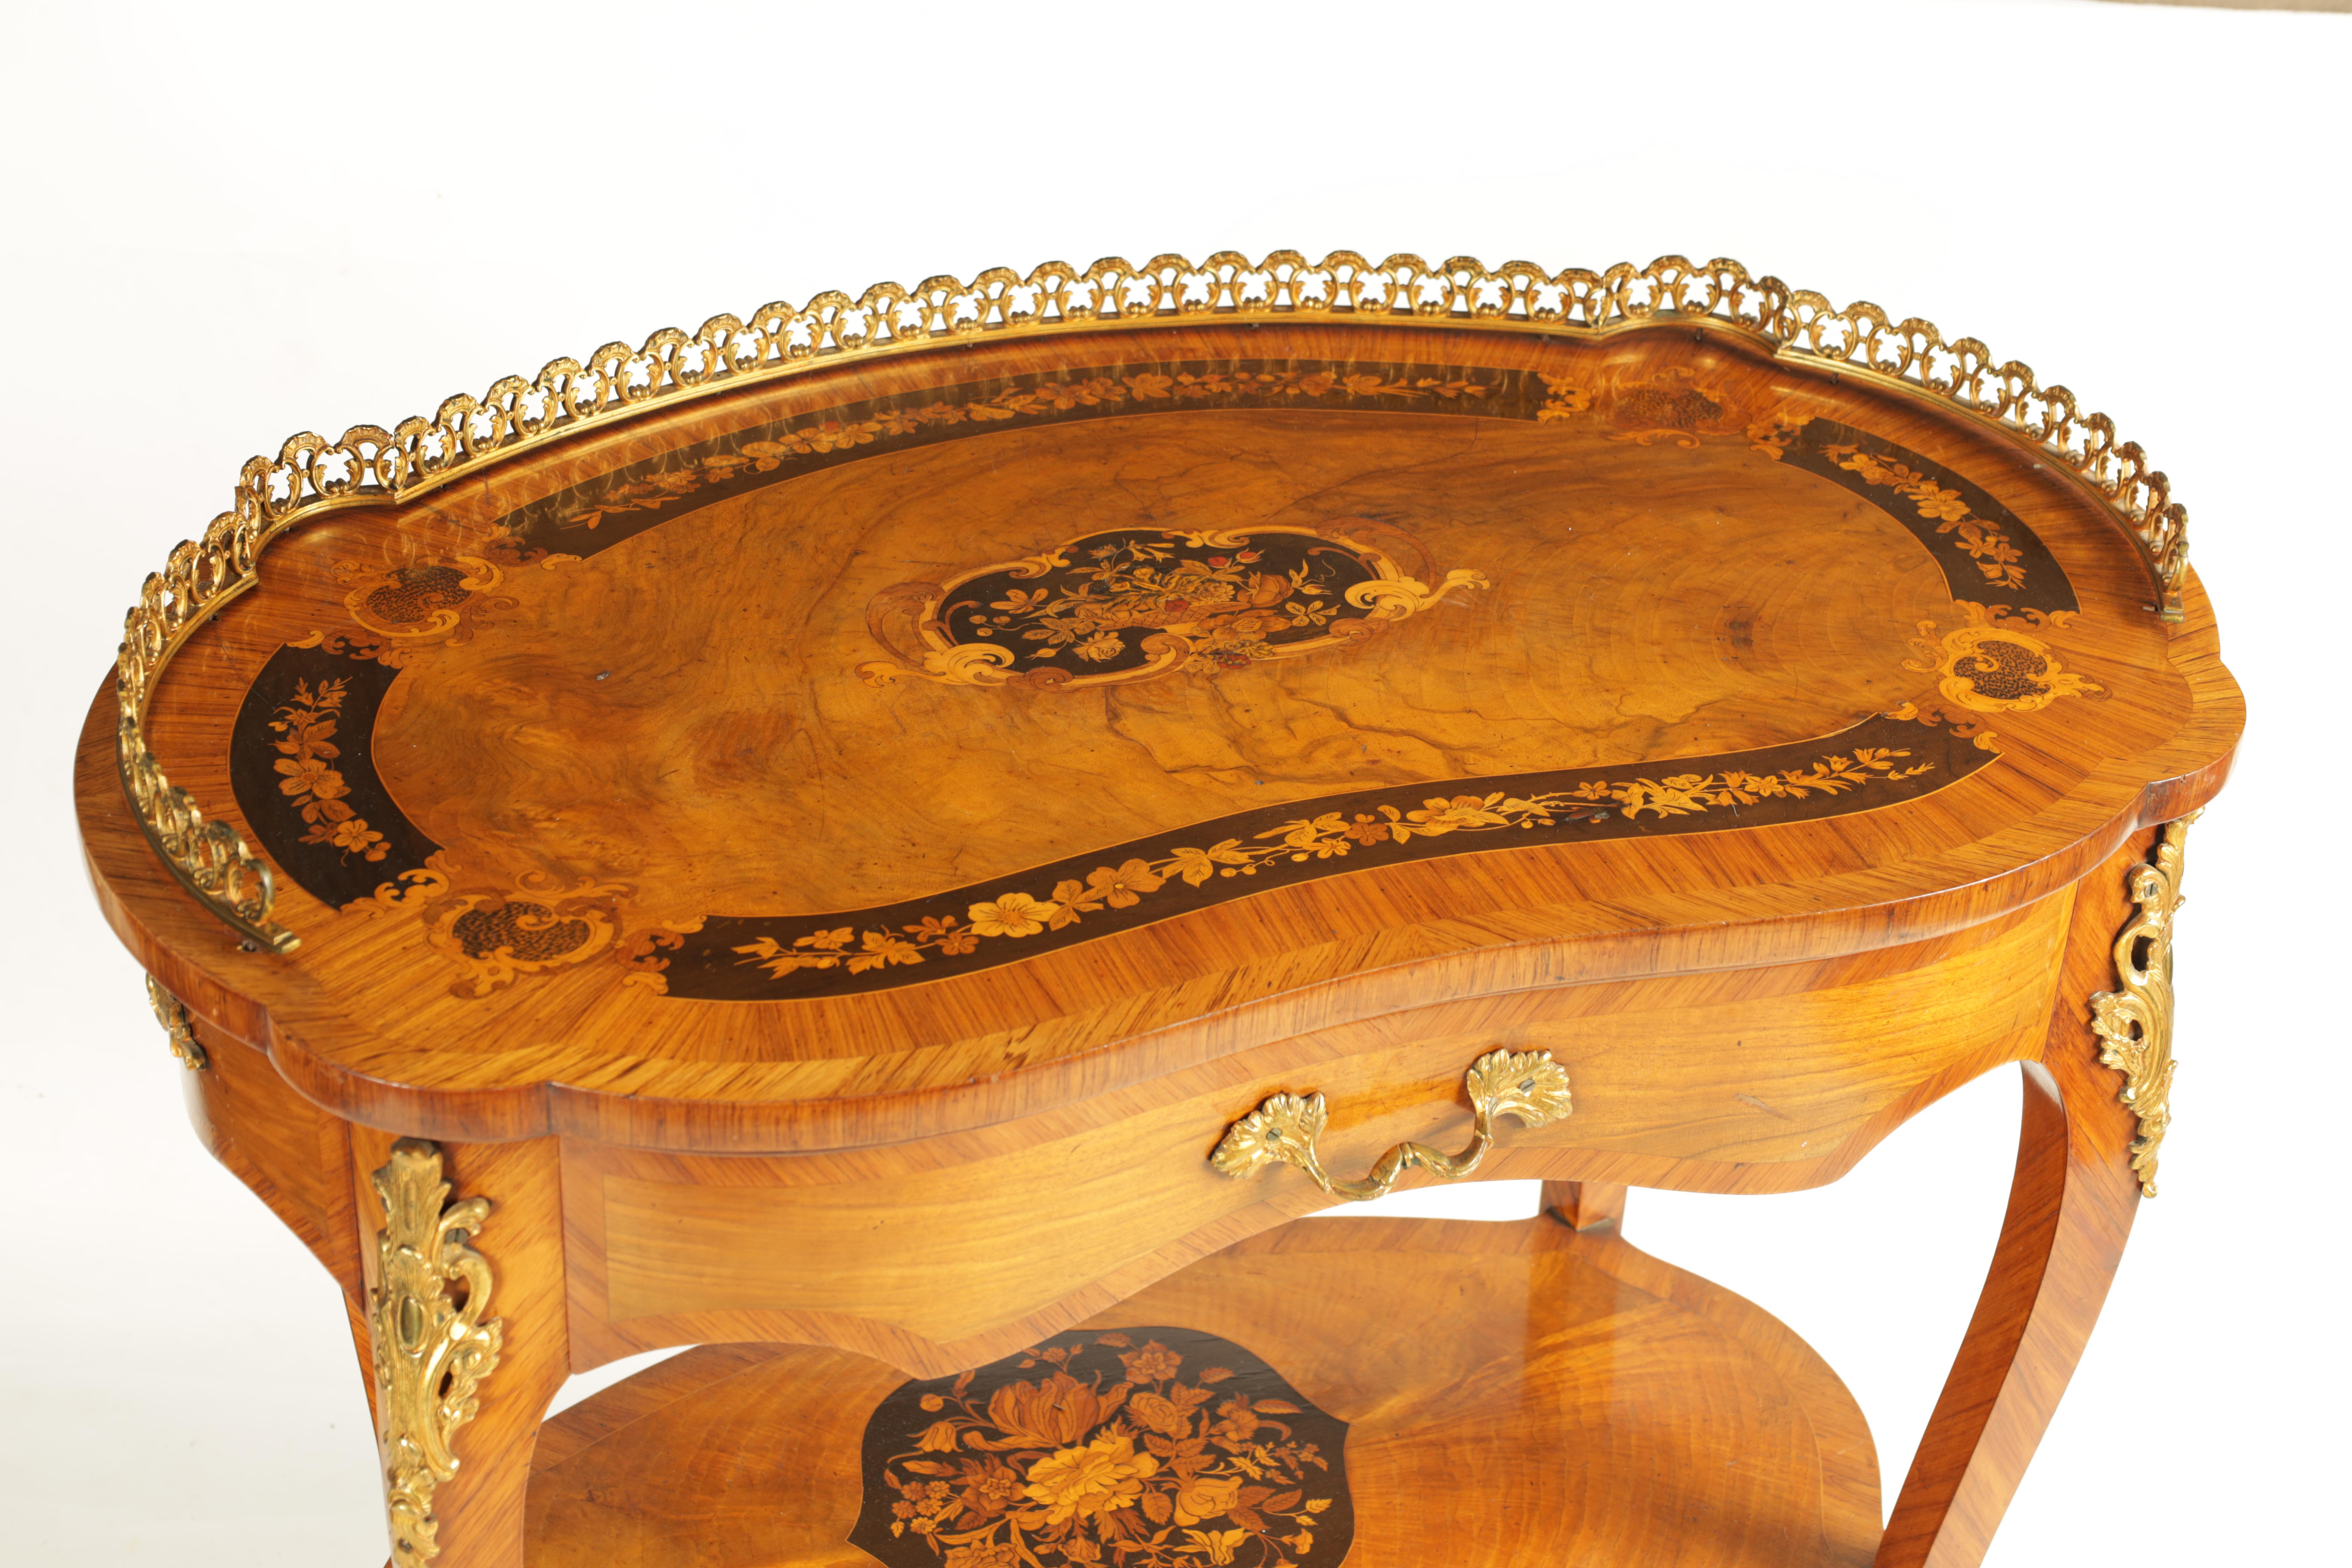 A FINE 19TH CENTURY MARQUETRY INLAID WALNUT KIDNEY SHAPED WRITING TABLE with raised brass - Image 2 of 10